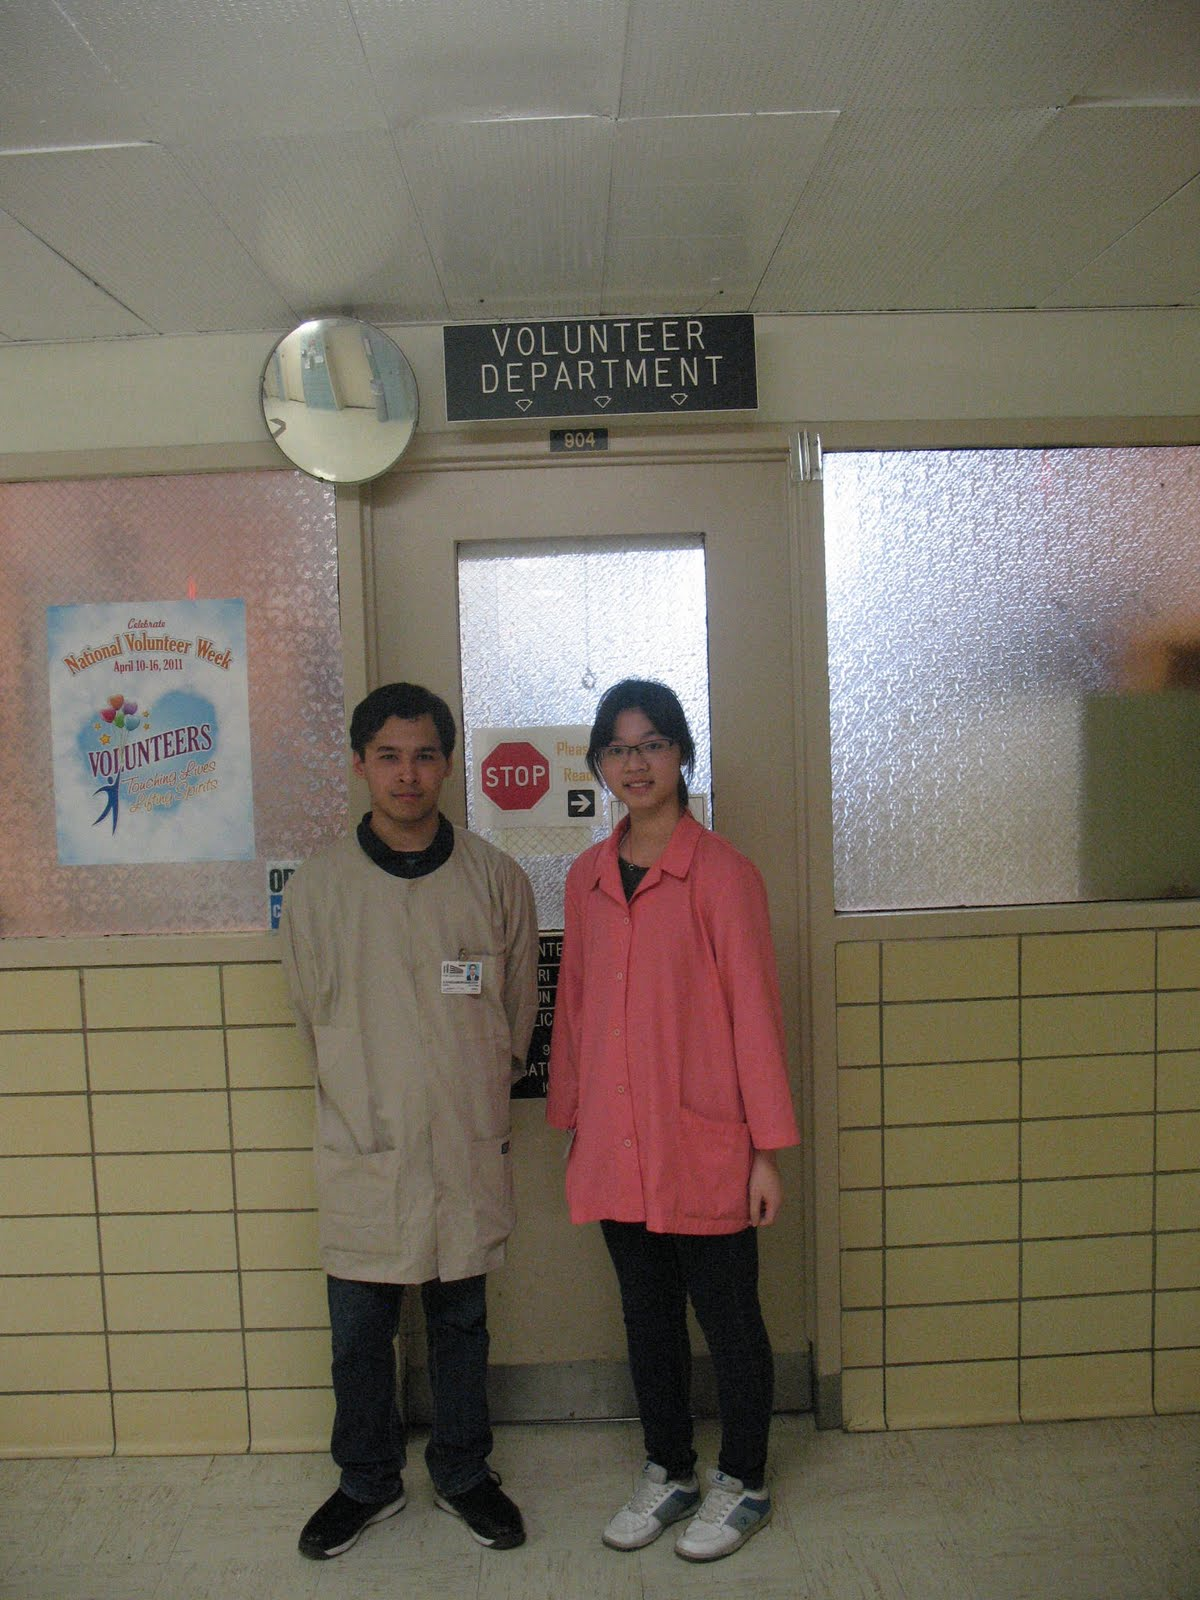 coney island hospital jiewen zhao we are standing in front of our volunteer department where i sign in and sign out place and i met many new friends over there we are wearing the volunteer